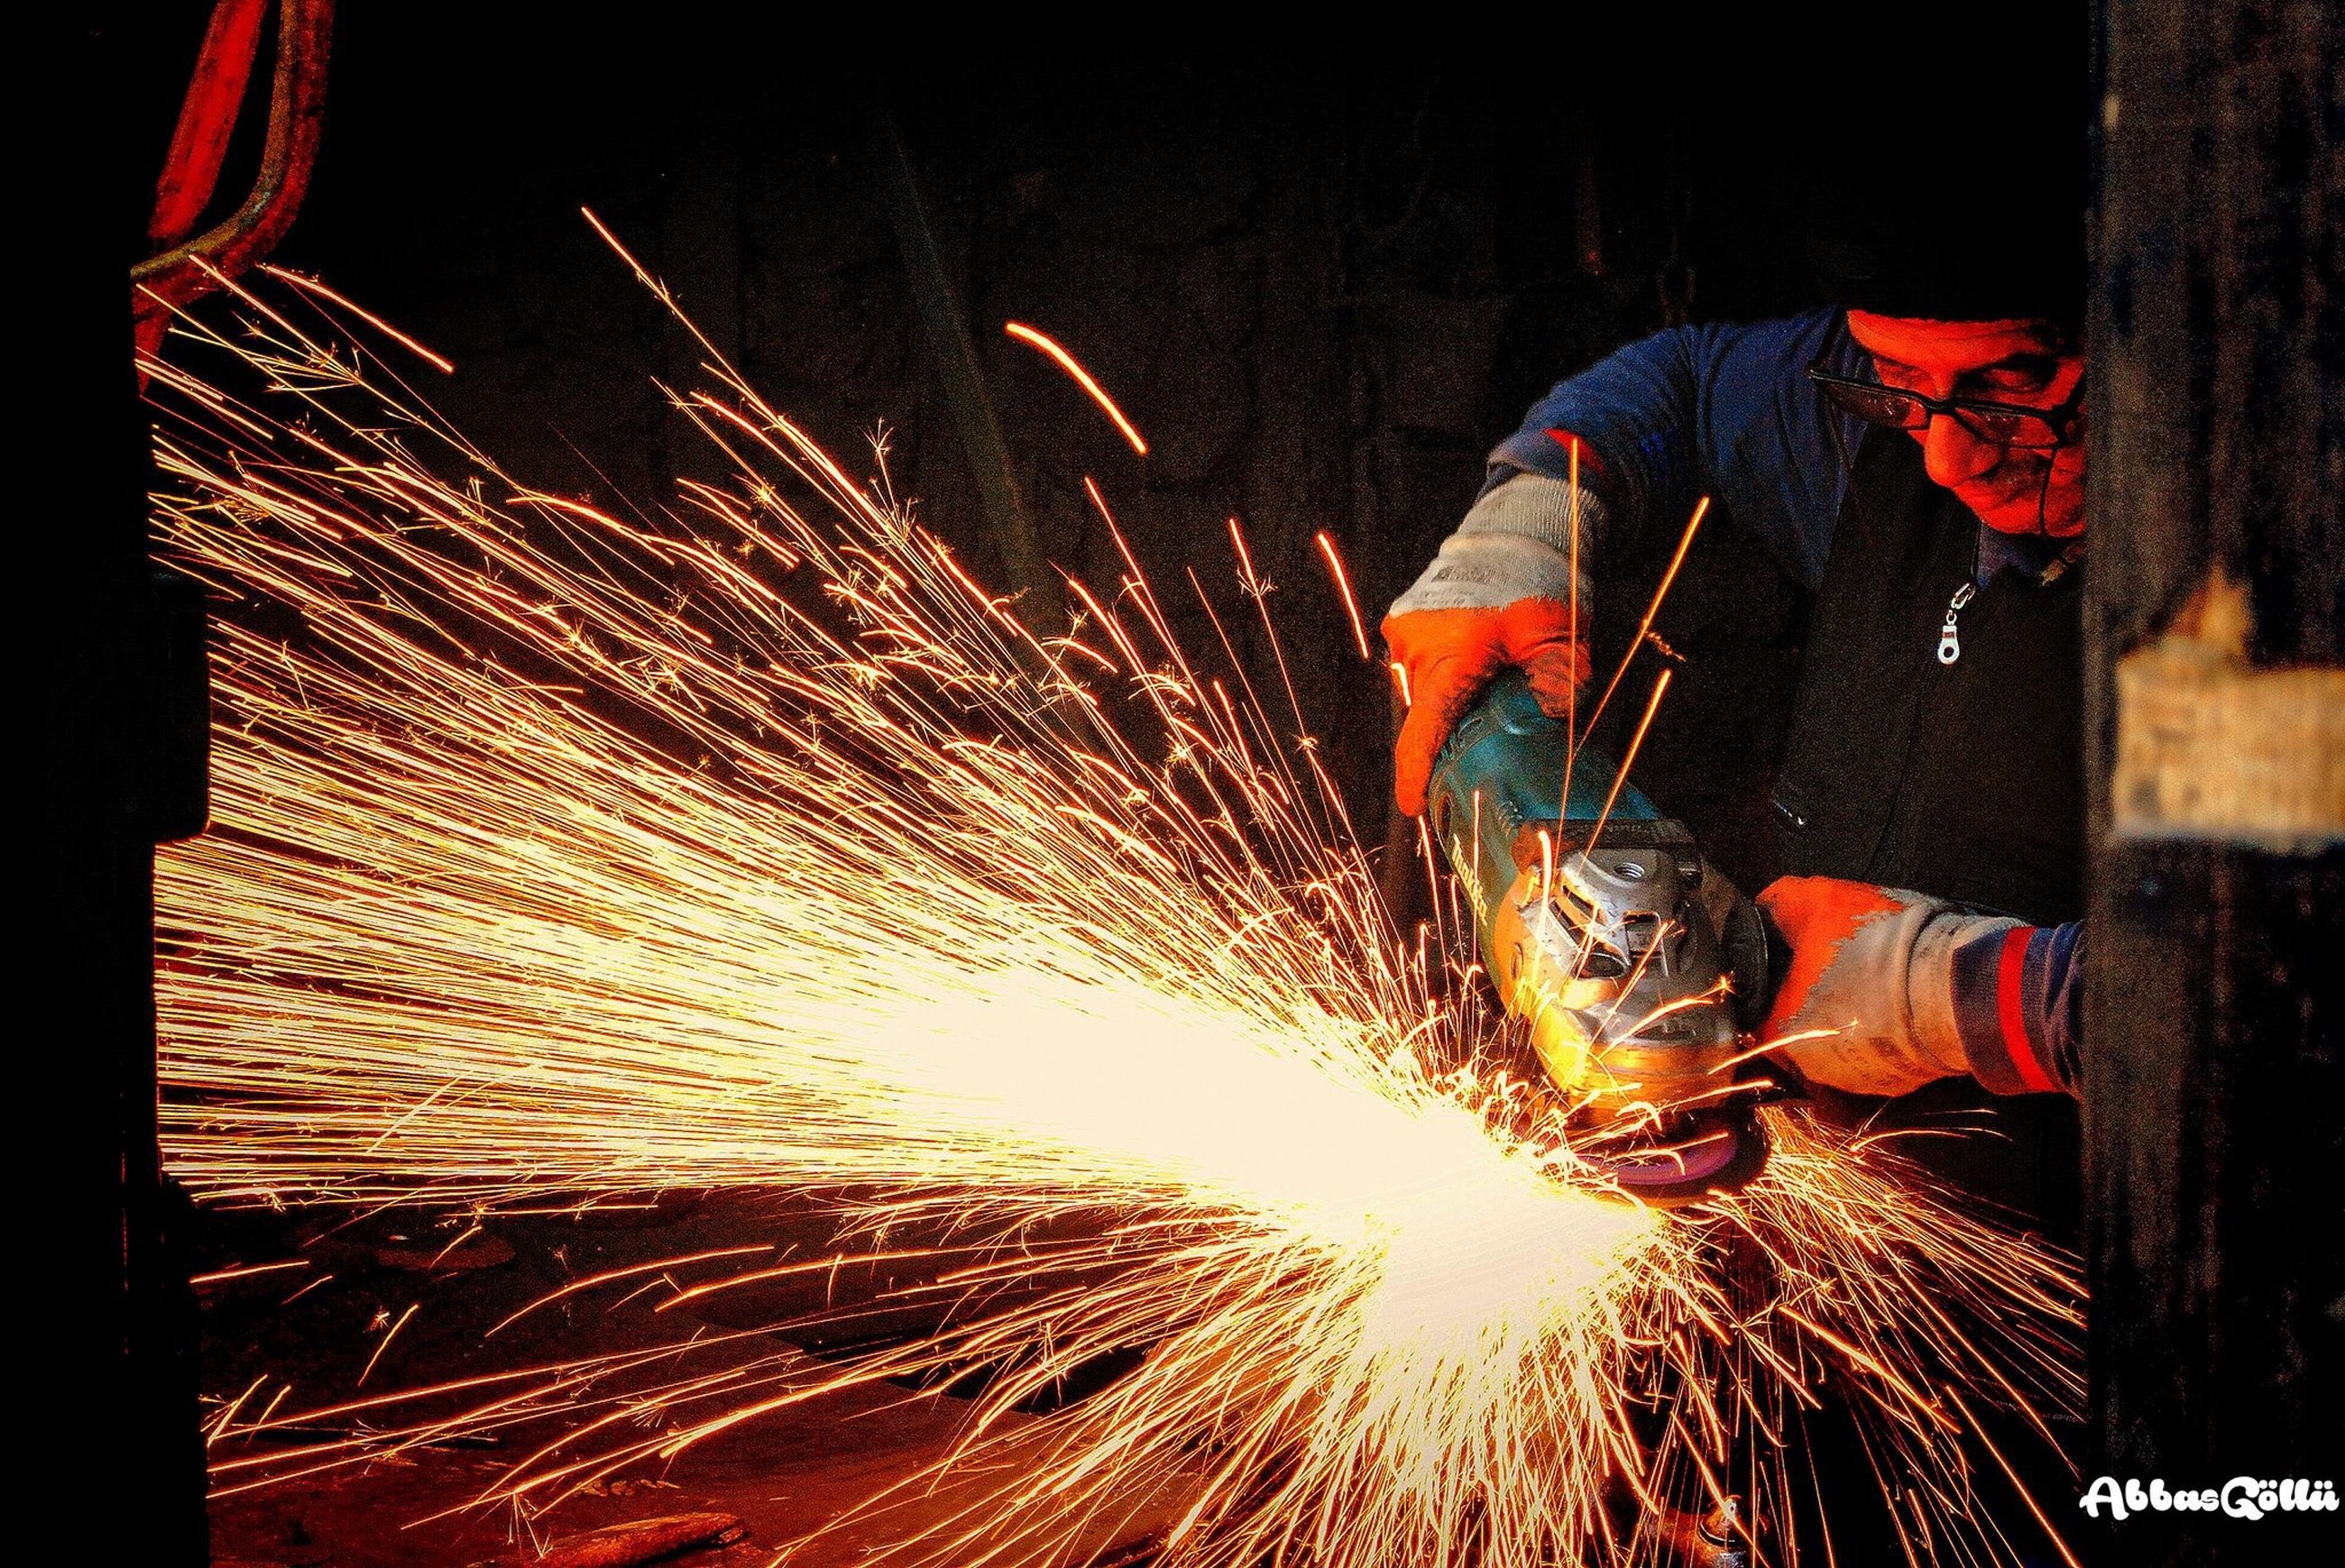 working, one person, industry, occupation, one man only, only men, adults only, indoors, illuminated, heat - temperature, skill, midsection, people, motion, men, grinder, metal industry, steel mill, speed, manual worker, workshop, adult, night, welder